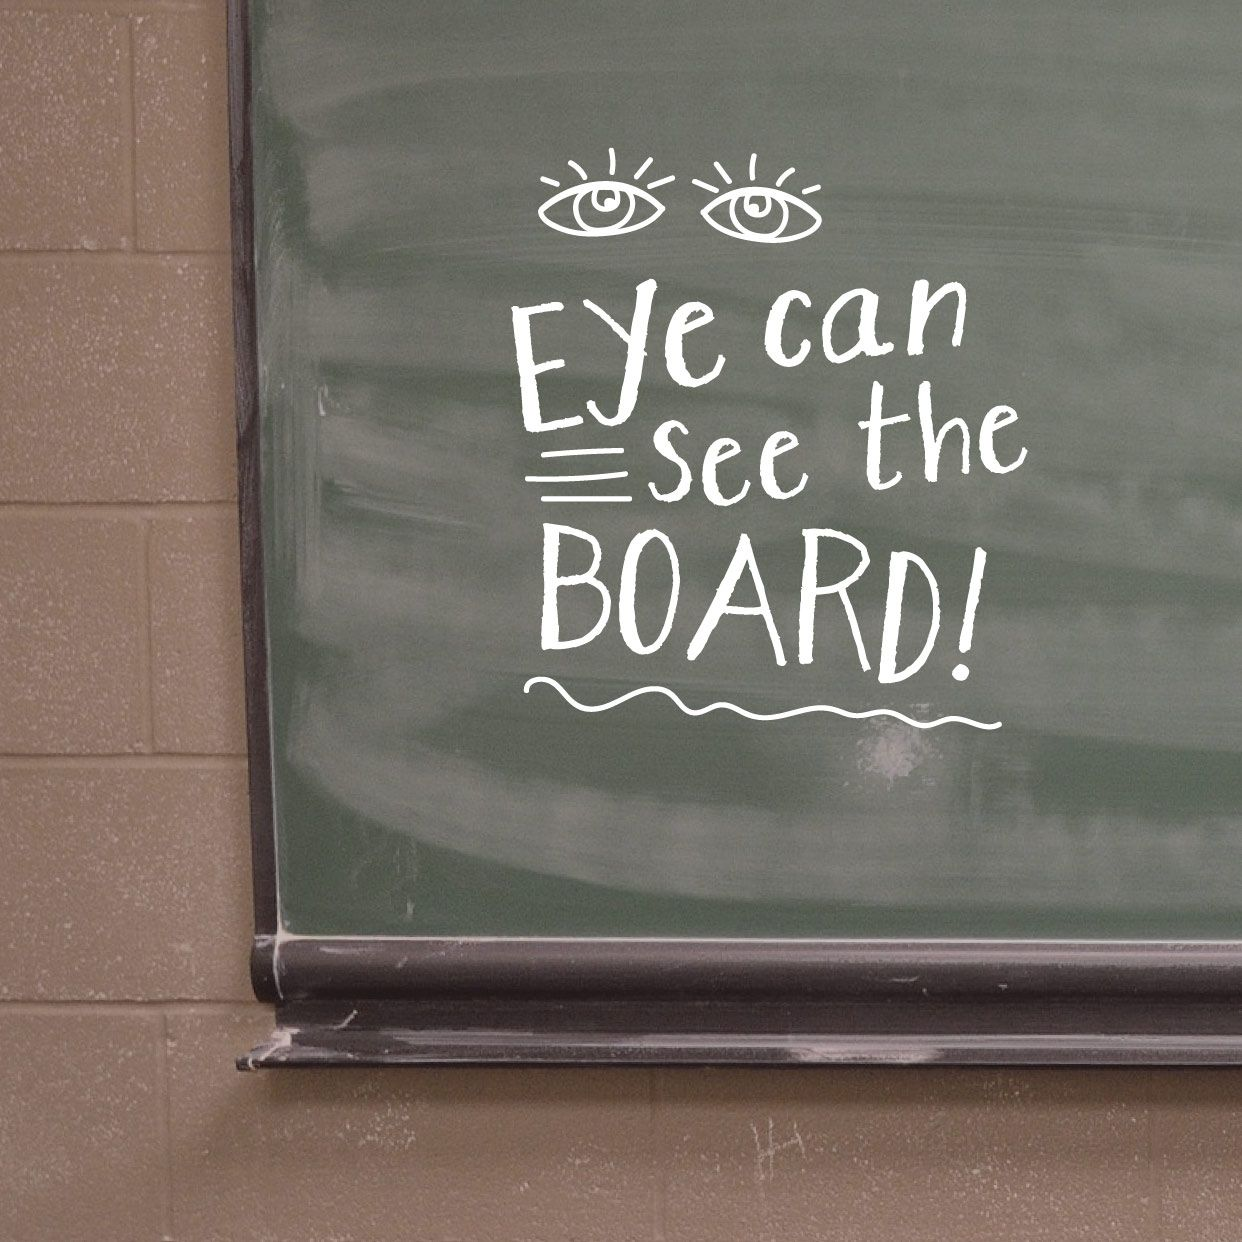 b64b382117c SCHEDULE AN EYE EXAM for the school year and ensure that your kids  vision  is classroom-ready!